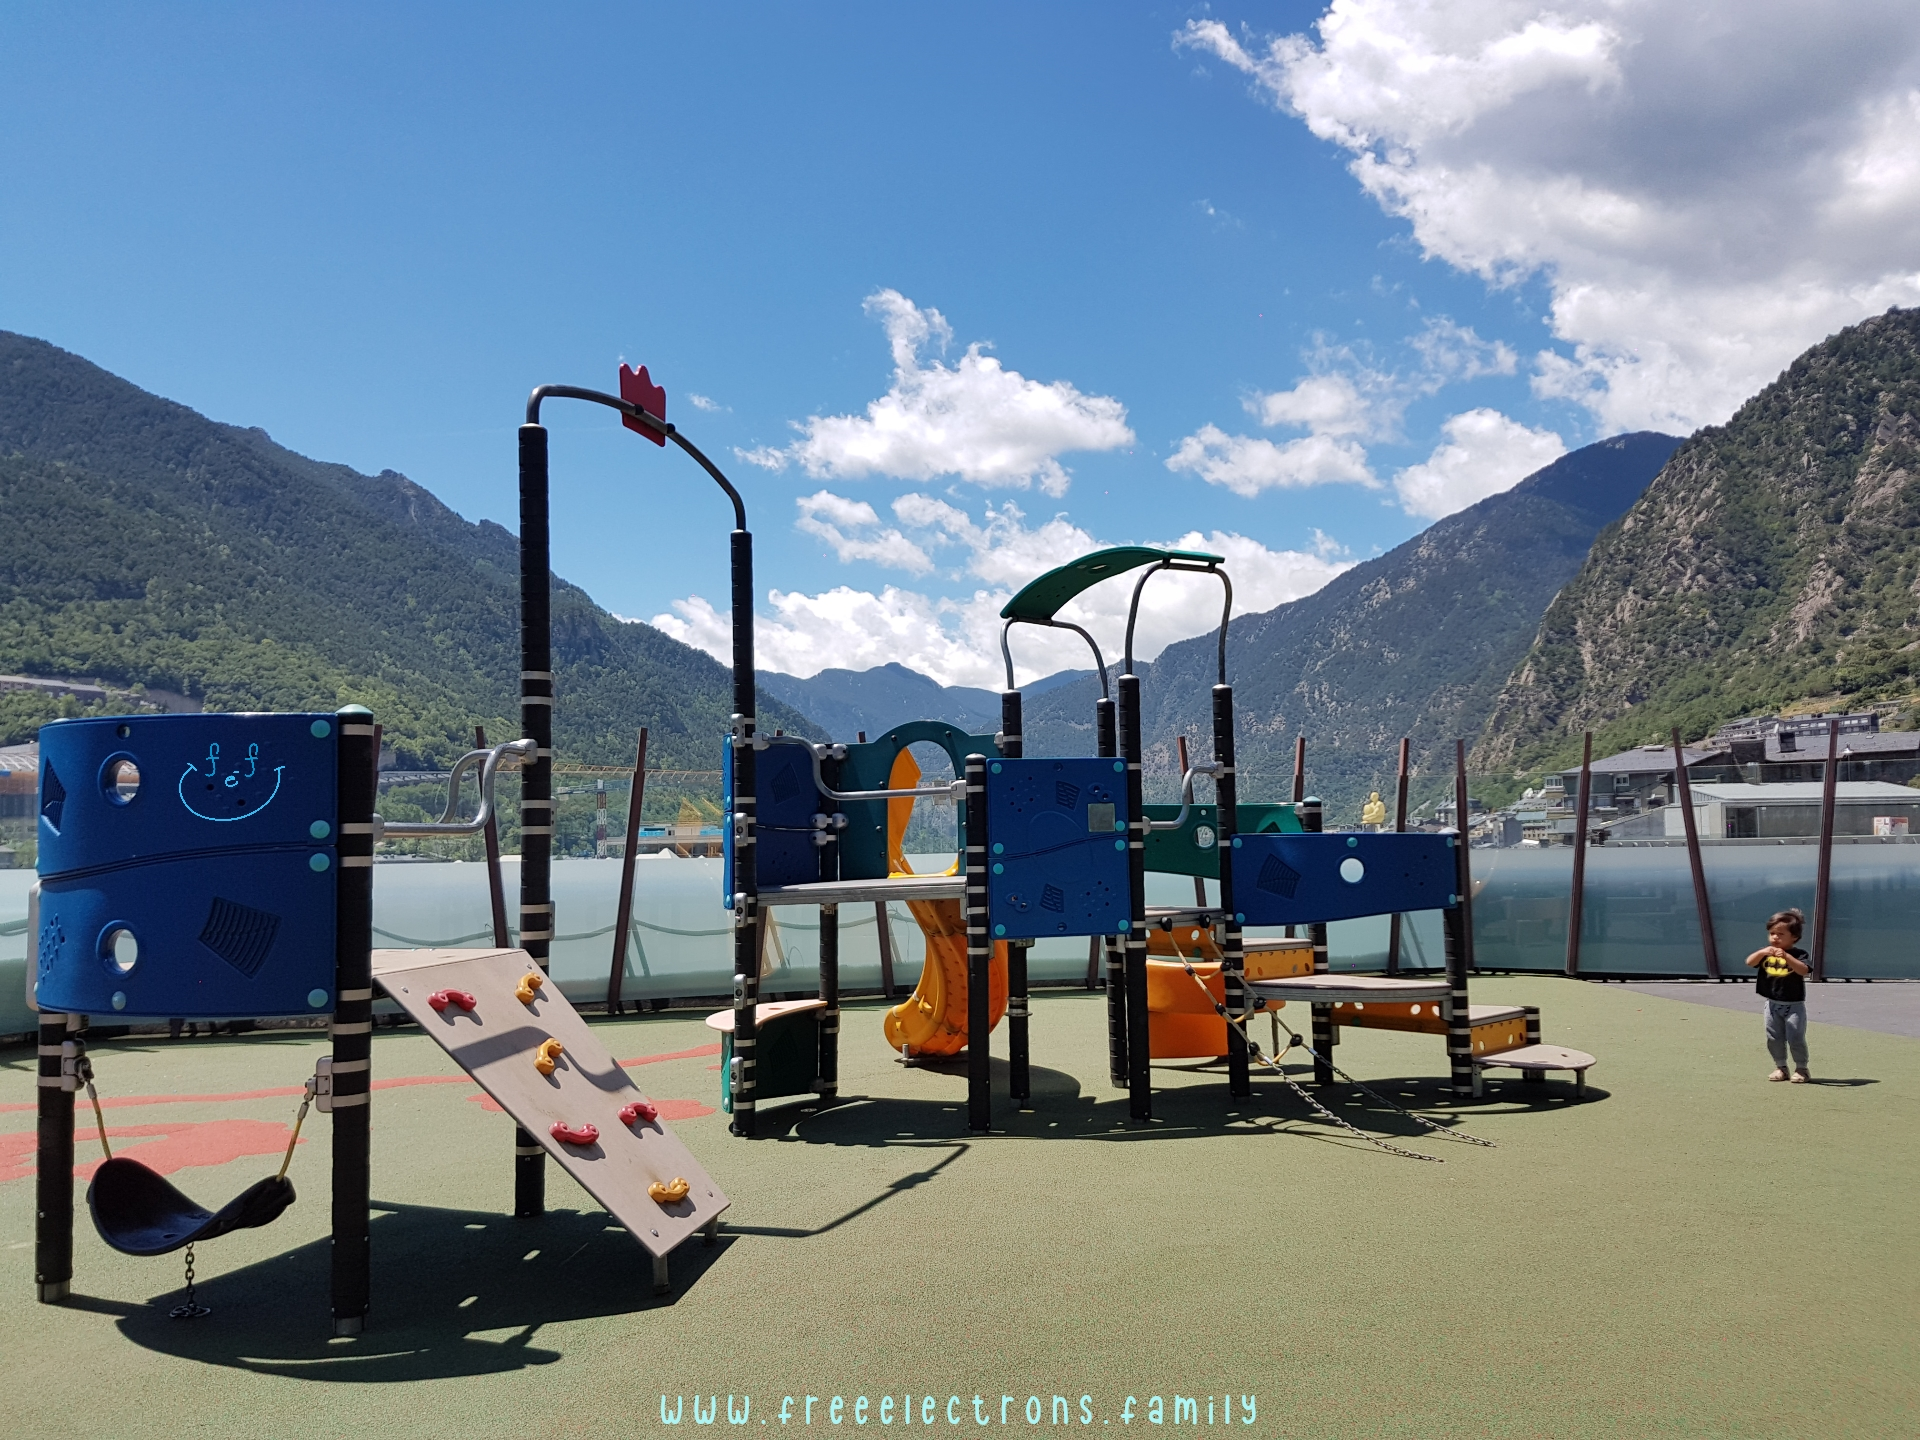 #FreeElectrons.Family - camping road trip Europe, Andorra centro playground.  A lone young boy in a modern playground with the mountains and blue bright sky in the background.  Text reads: www.freeelectrons.family